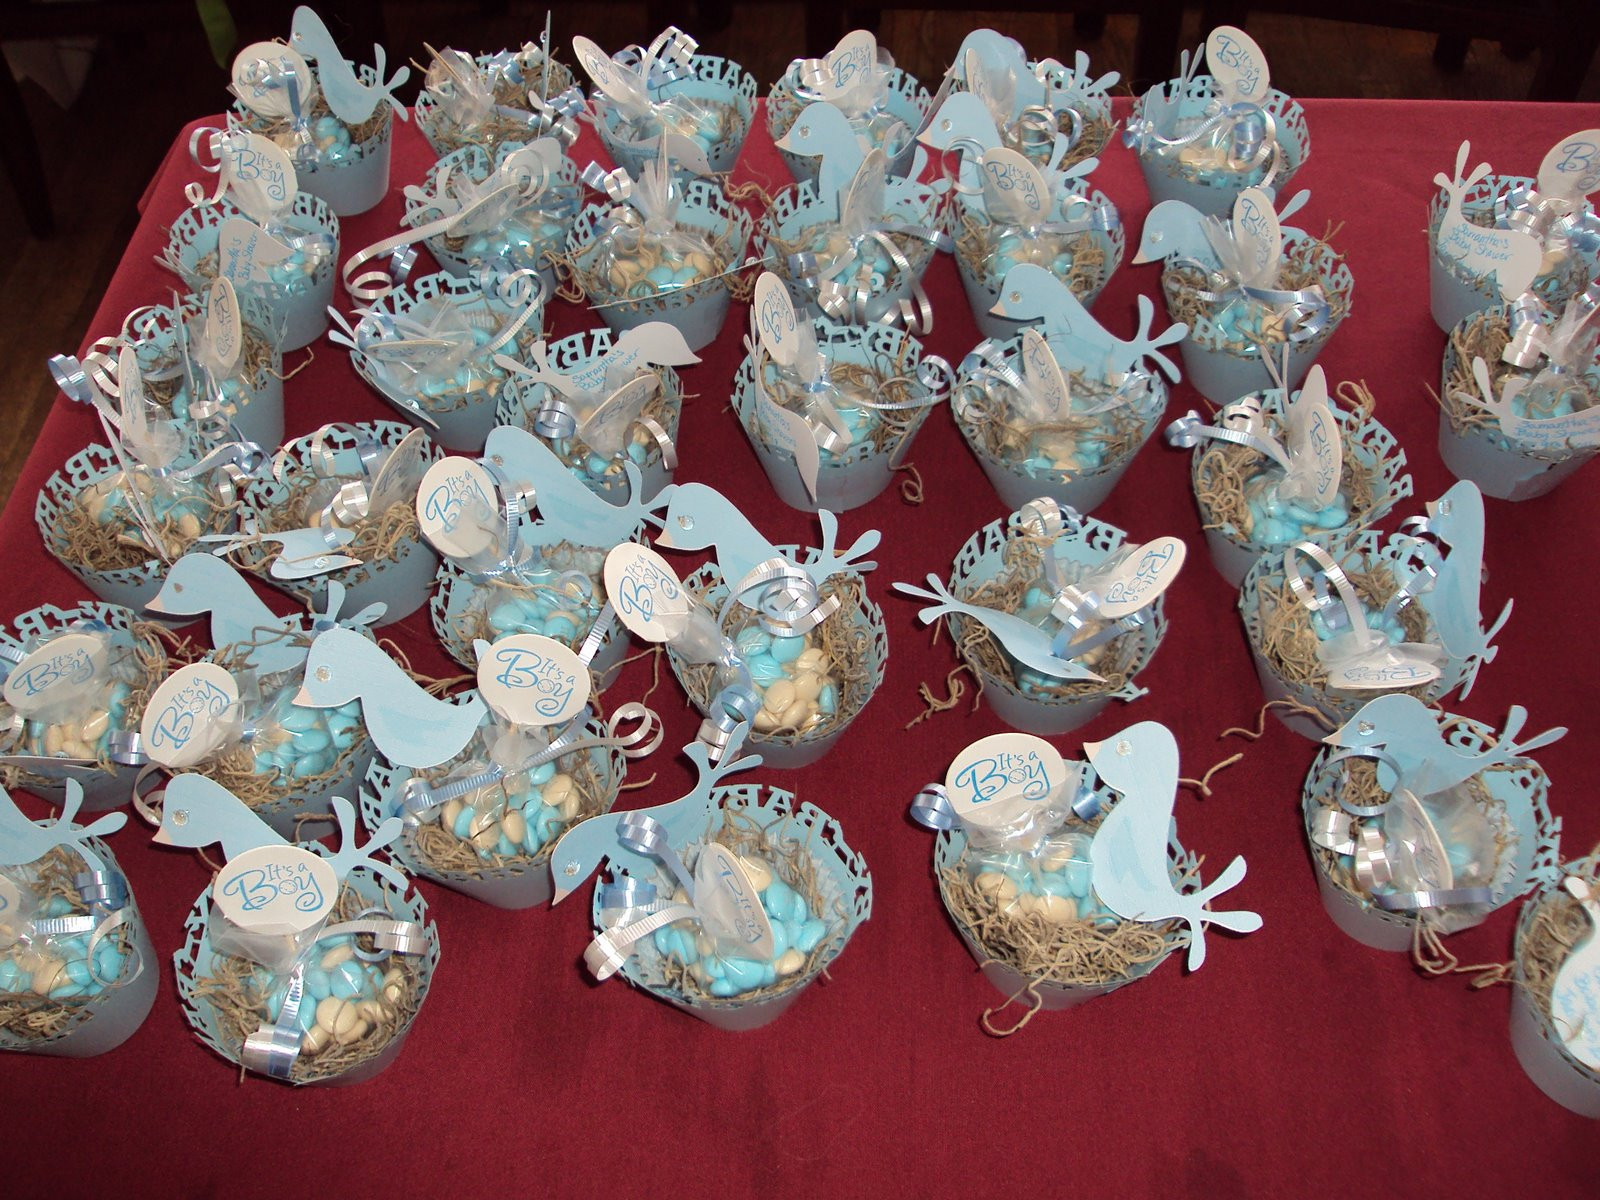 Baby Shower Giveaway Gift Ideas  Baby shower giveaways ideas